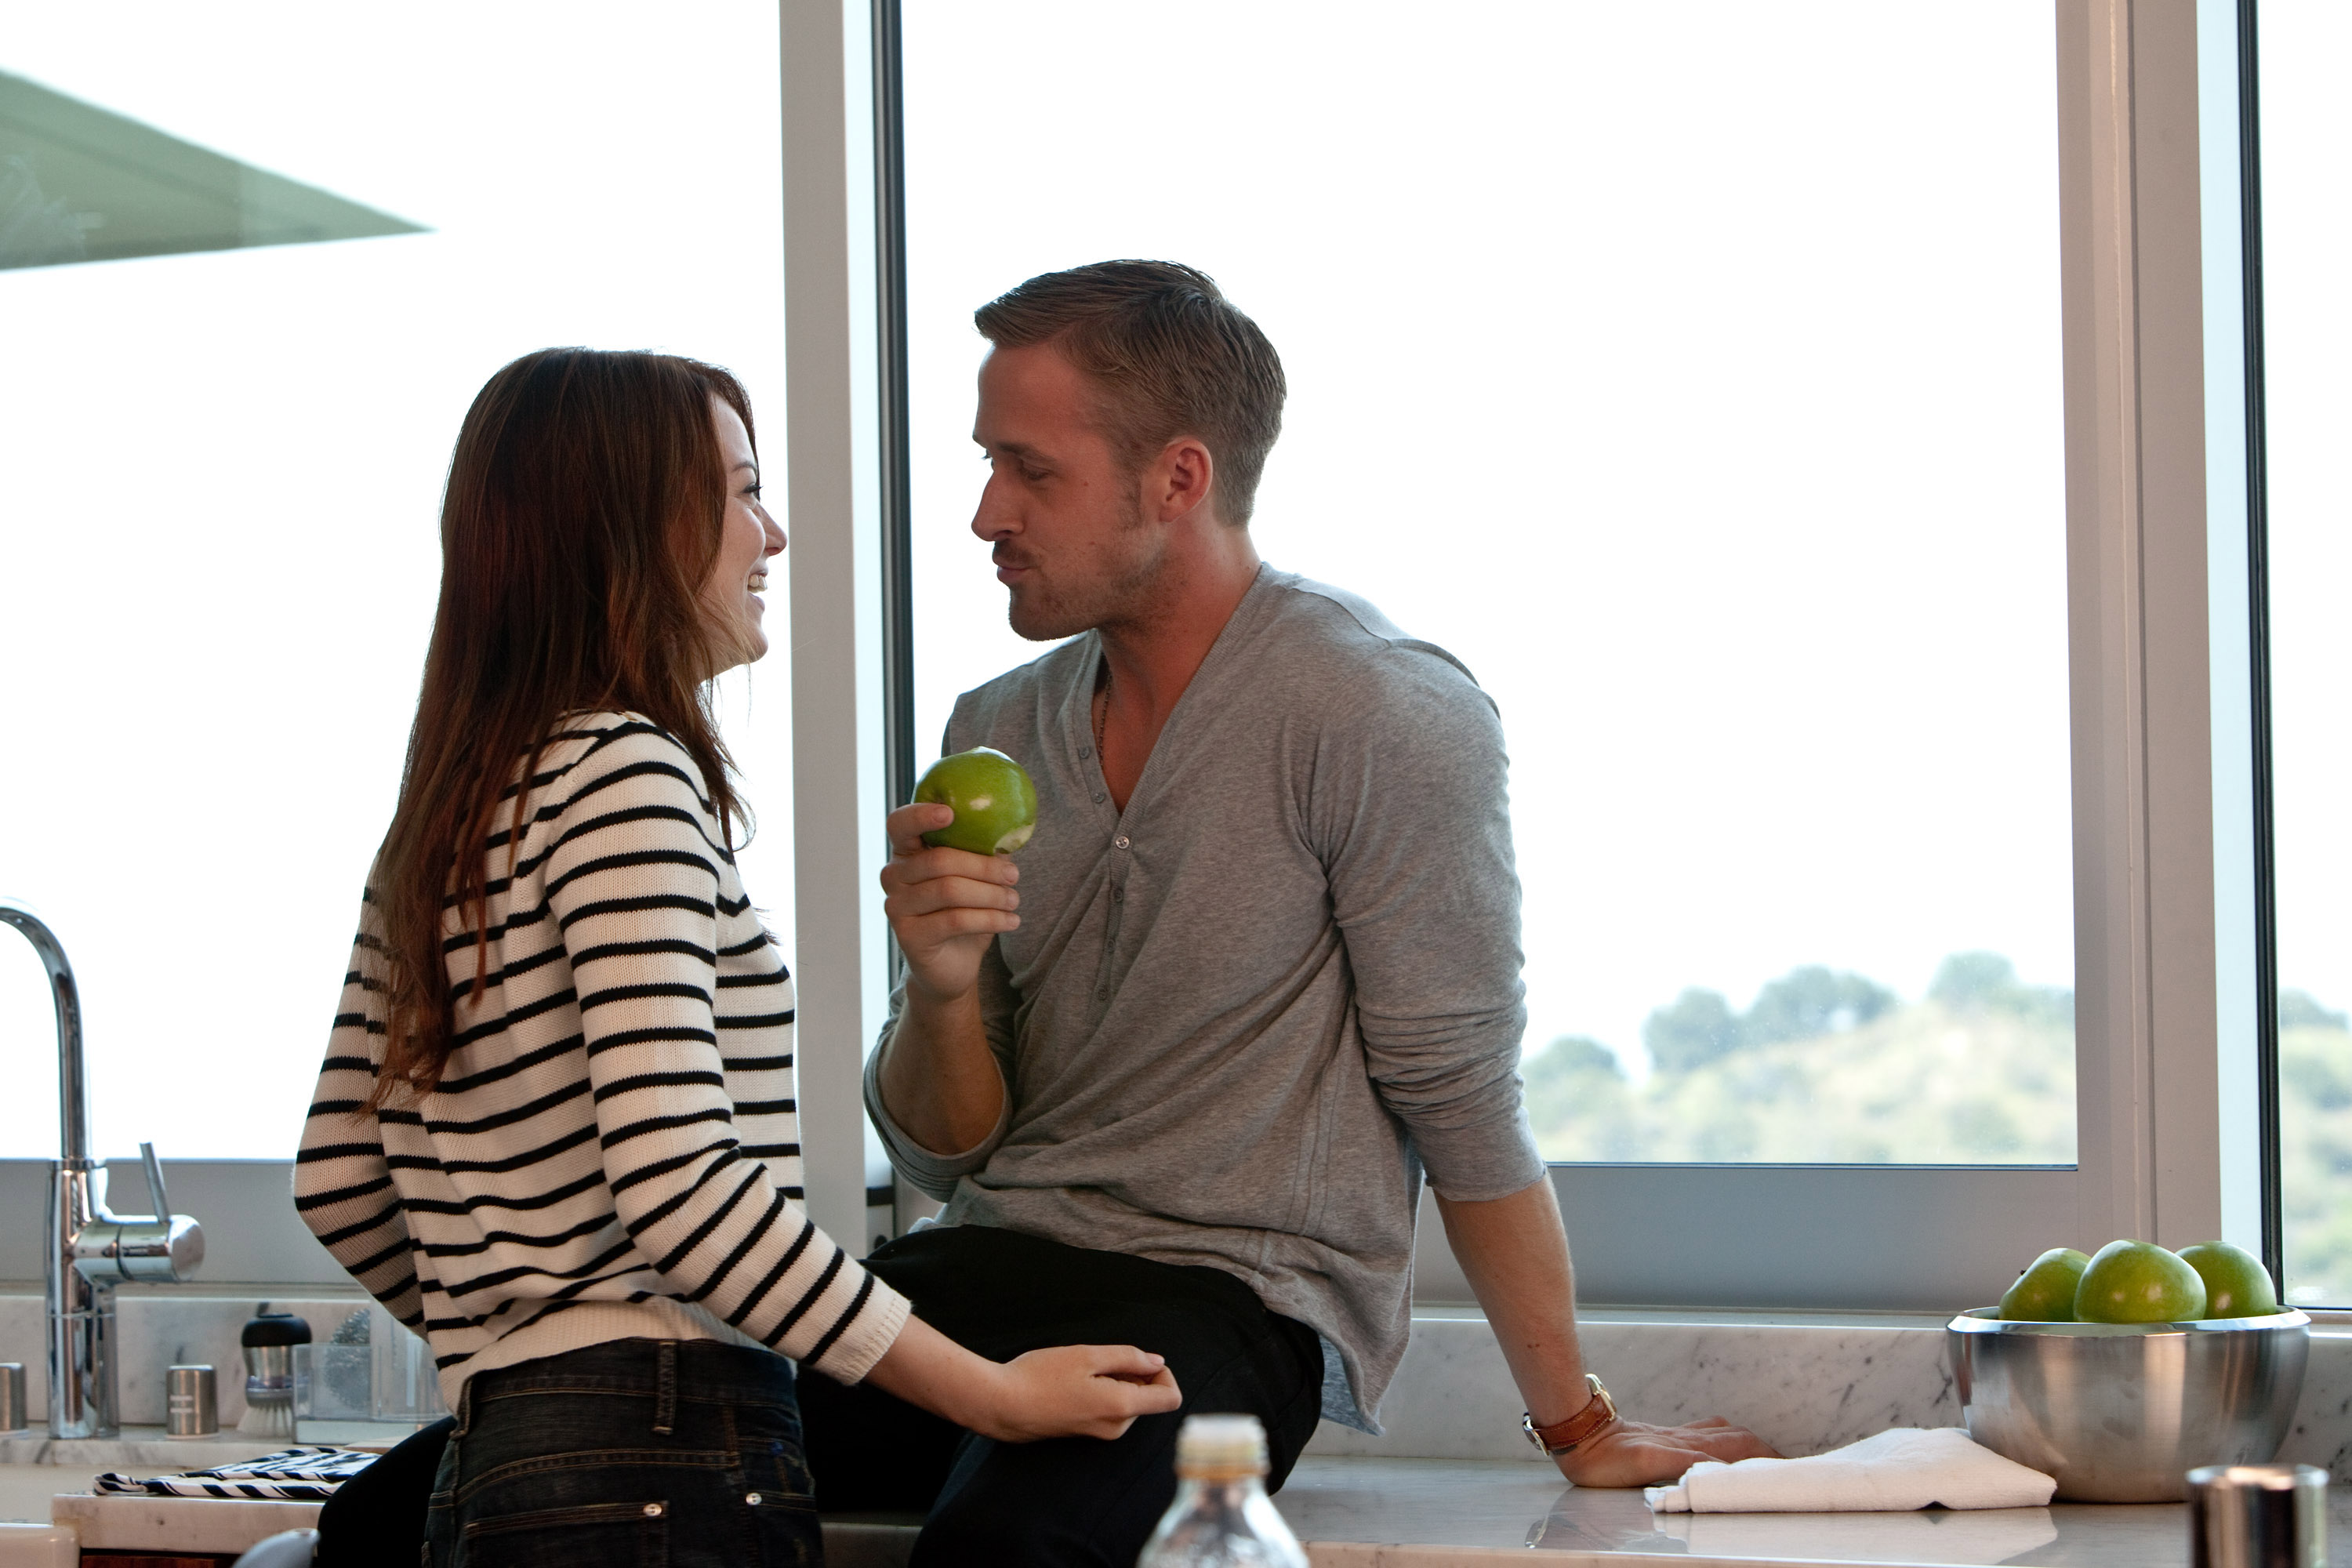 "(L-r) EMMA STONE as Hannah and RYAN GOSLING as Jacob in Warner Bros. Pictures' comedy ""CRAZY, STUPID, LOVE."" a Warner Bros. Pictures release. Photo by Ben Glass"